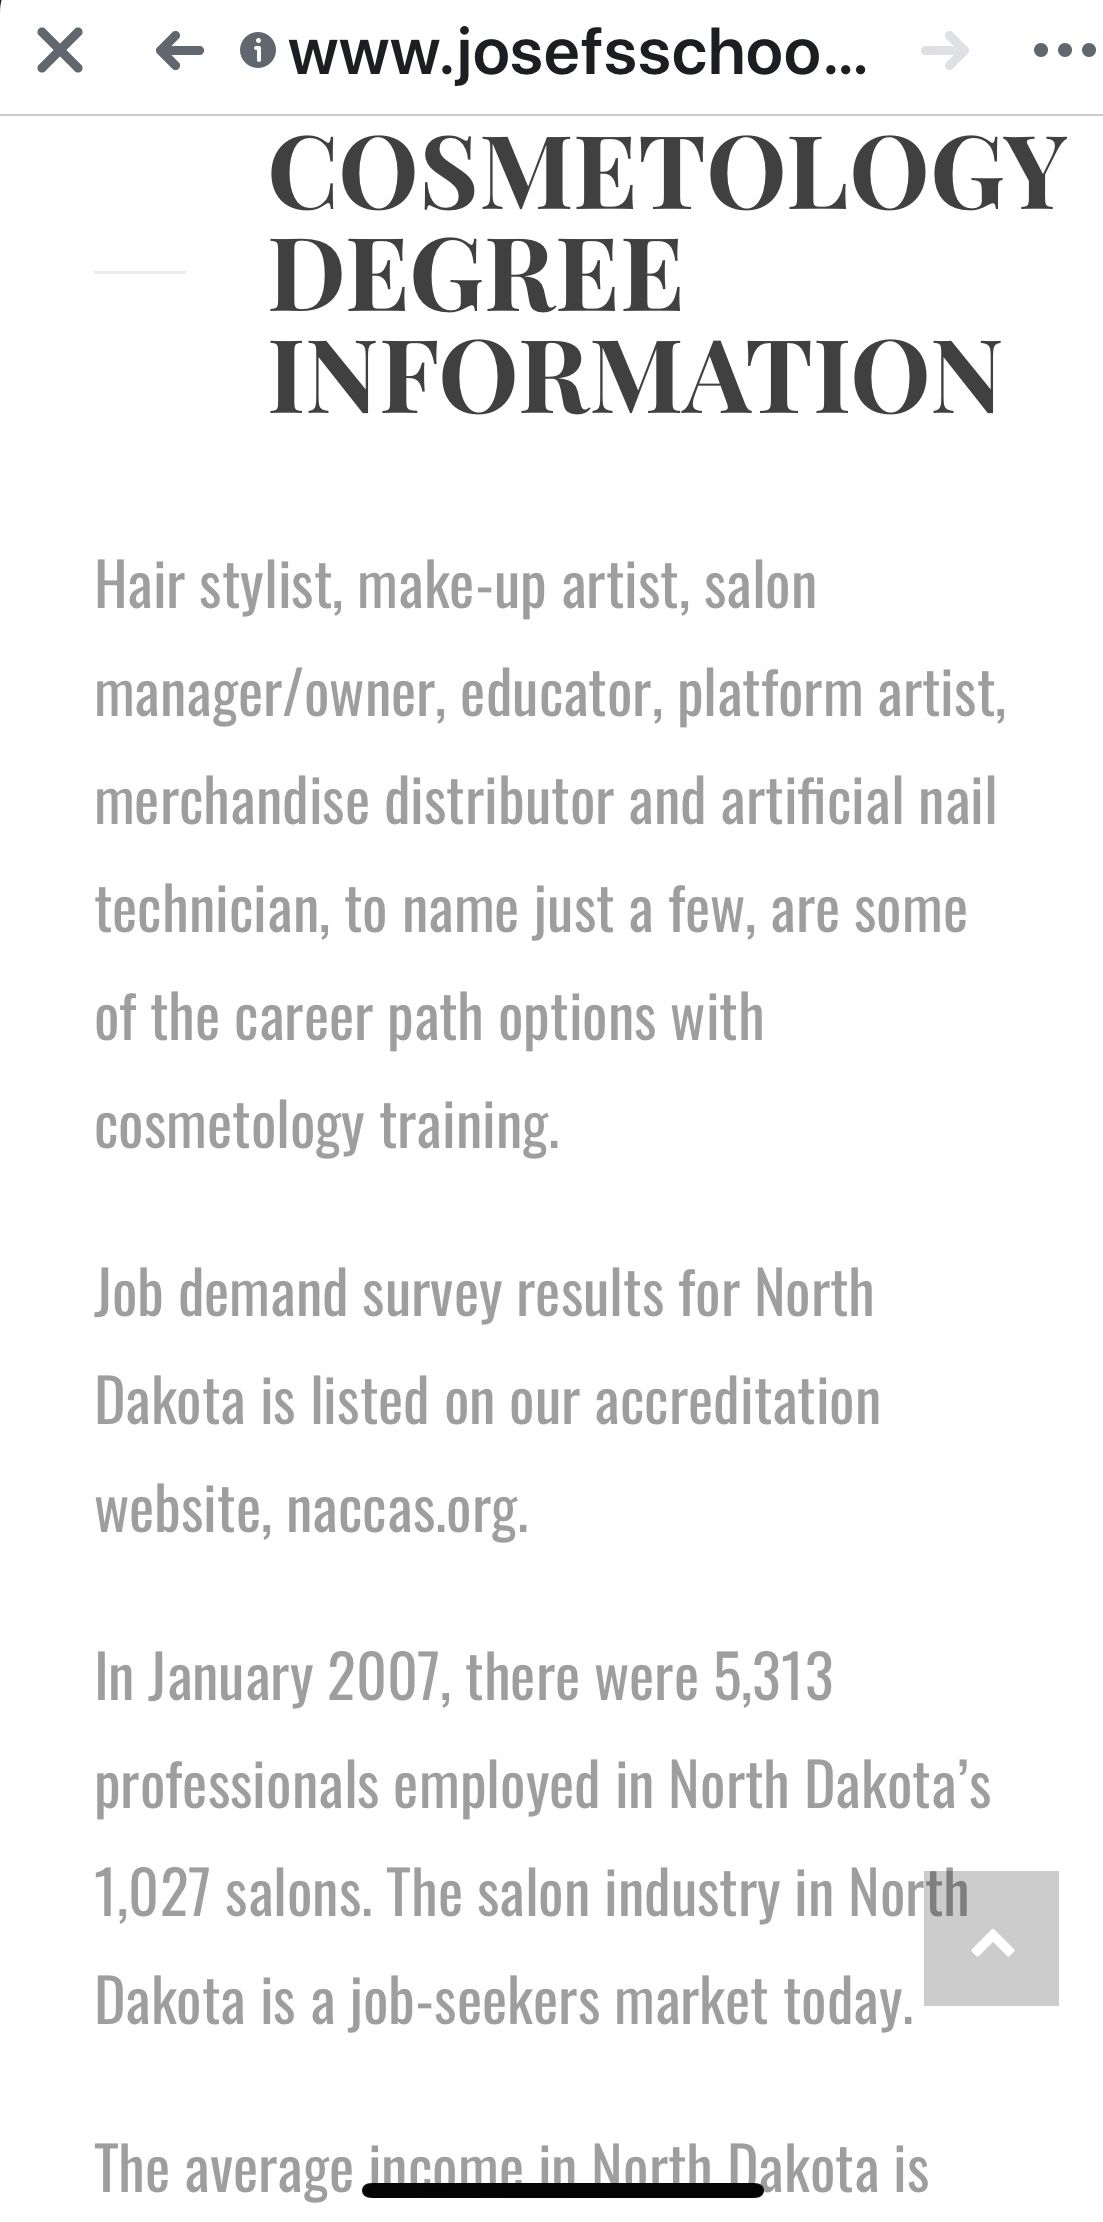 Cosmetology Cosmetology, Salon manager, Artificial nails